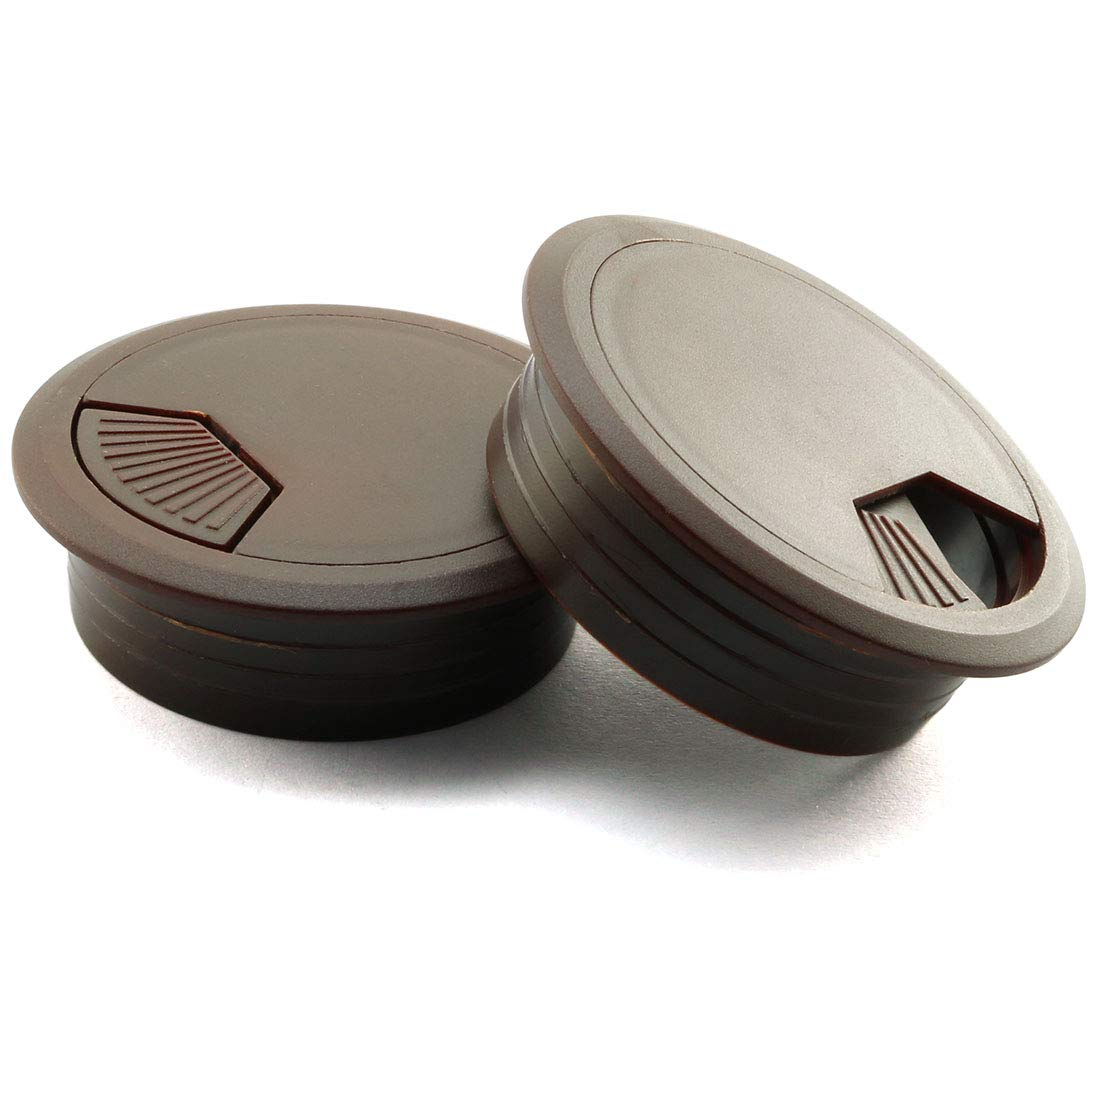 HJ Garden 2pcs 2inch Desk Wire Cord Cable Grommets Hole Cover for Office PC Desk Cable Cord Organizer Plastic Cover(Dark Brown)